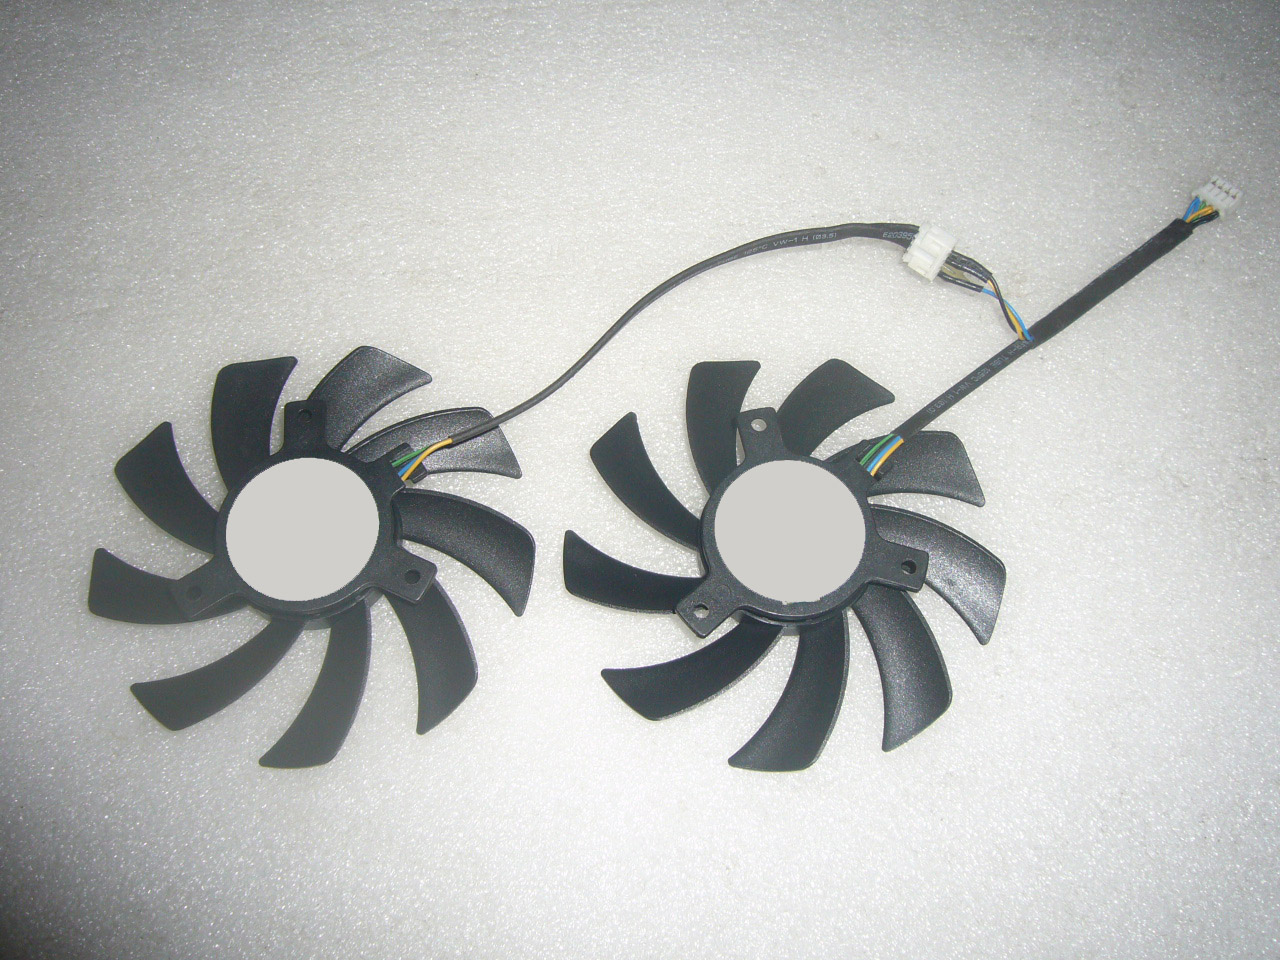 New For MSI GTX1060 Zotac GTX1070 MINI ZT-P10700K-10M HA9010H12F-Z 40MM 85MM Graphics Card Cooling Fan image